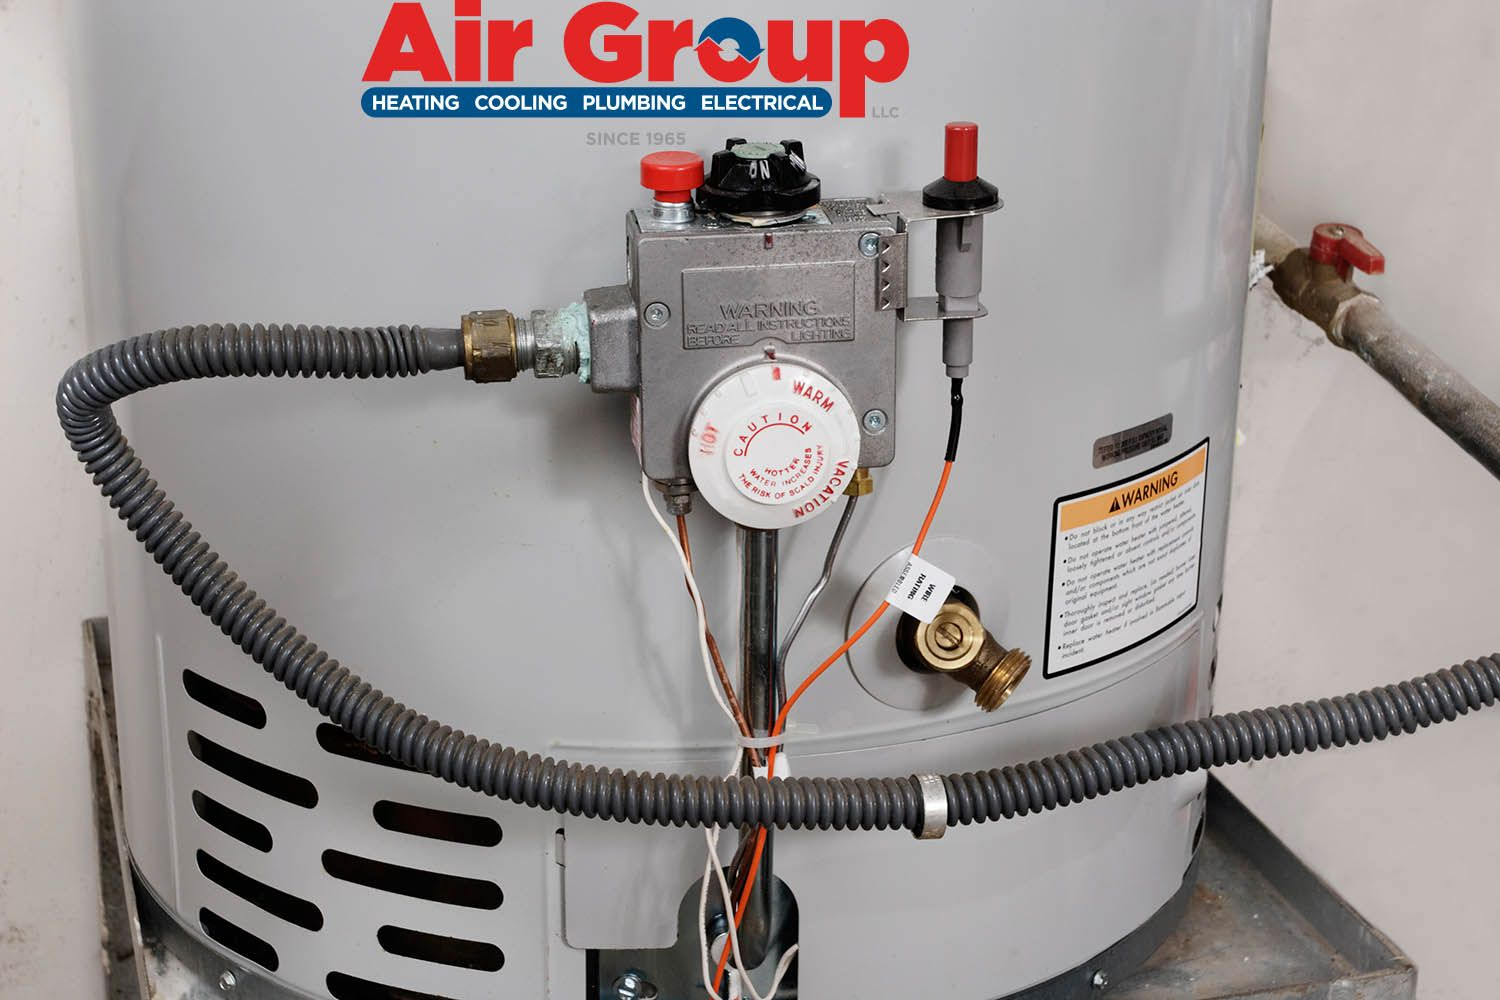 Check your water heater's thermostat. The thermostat, or